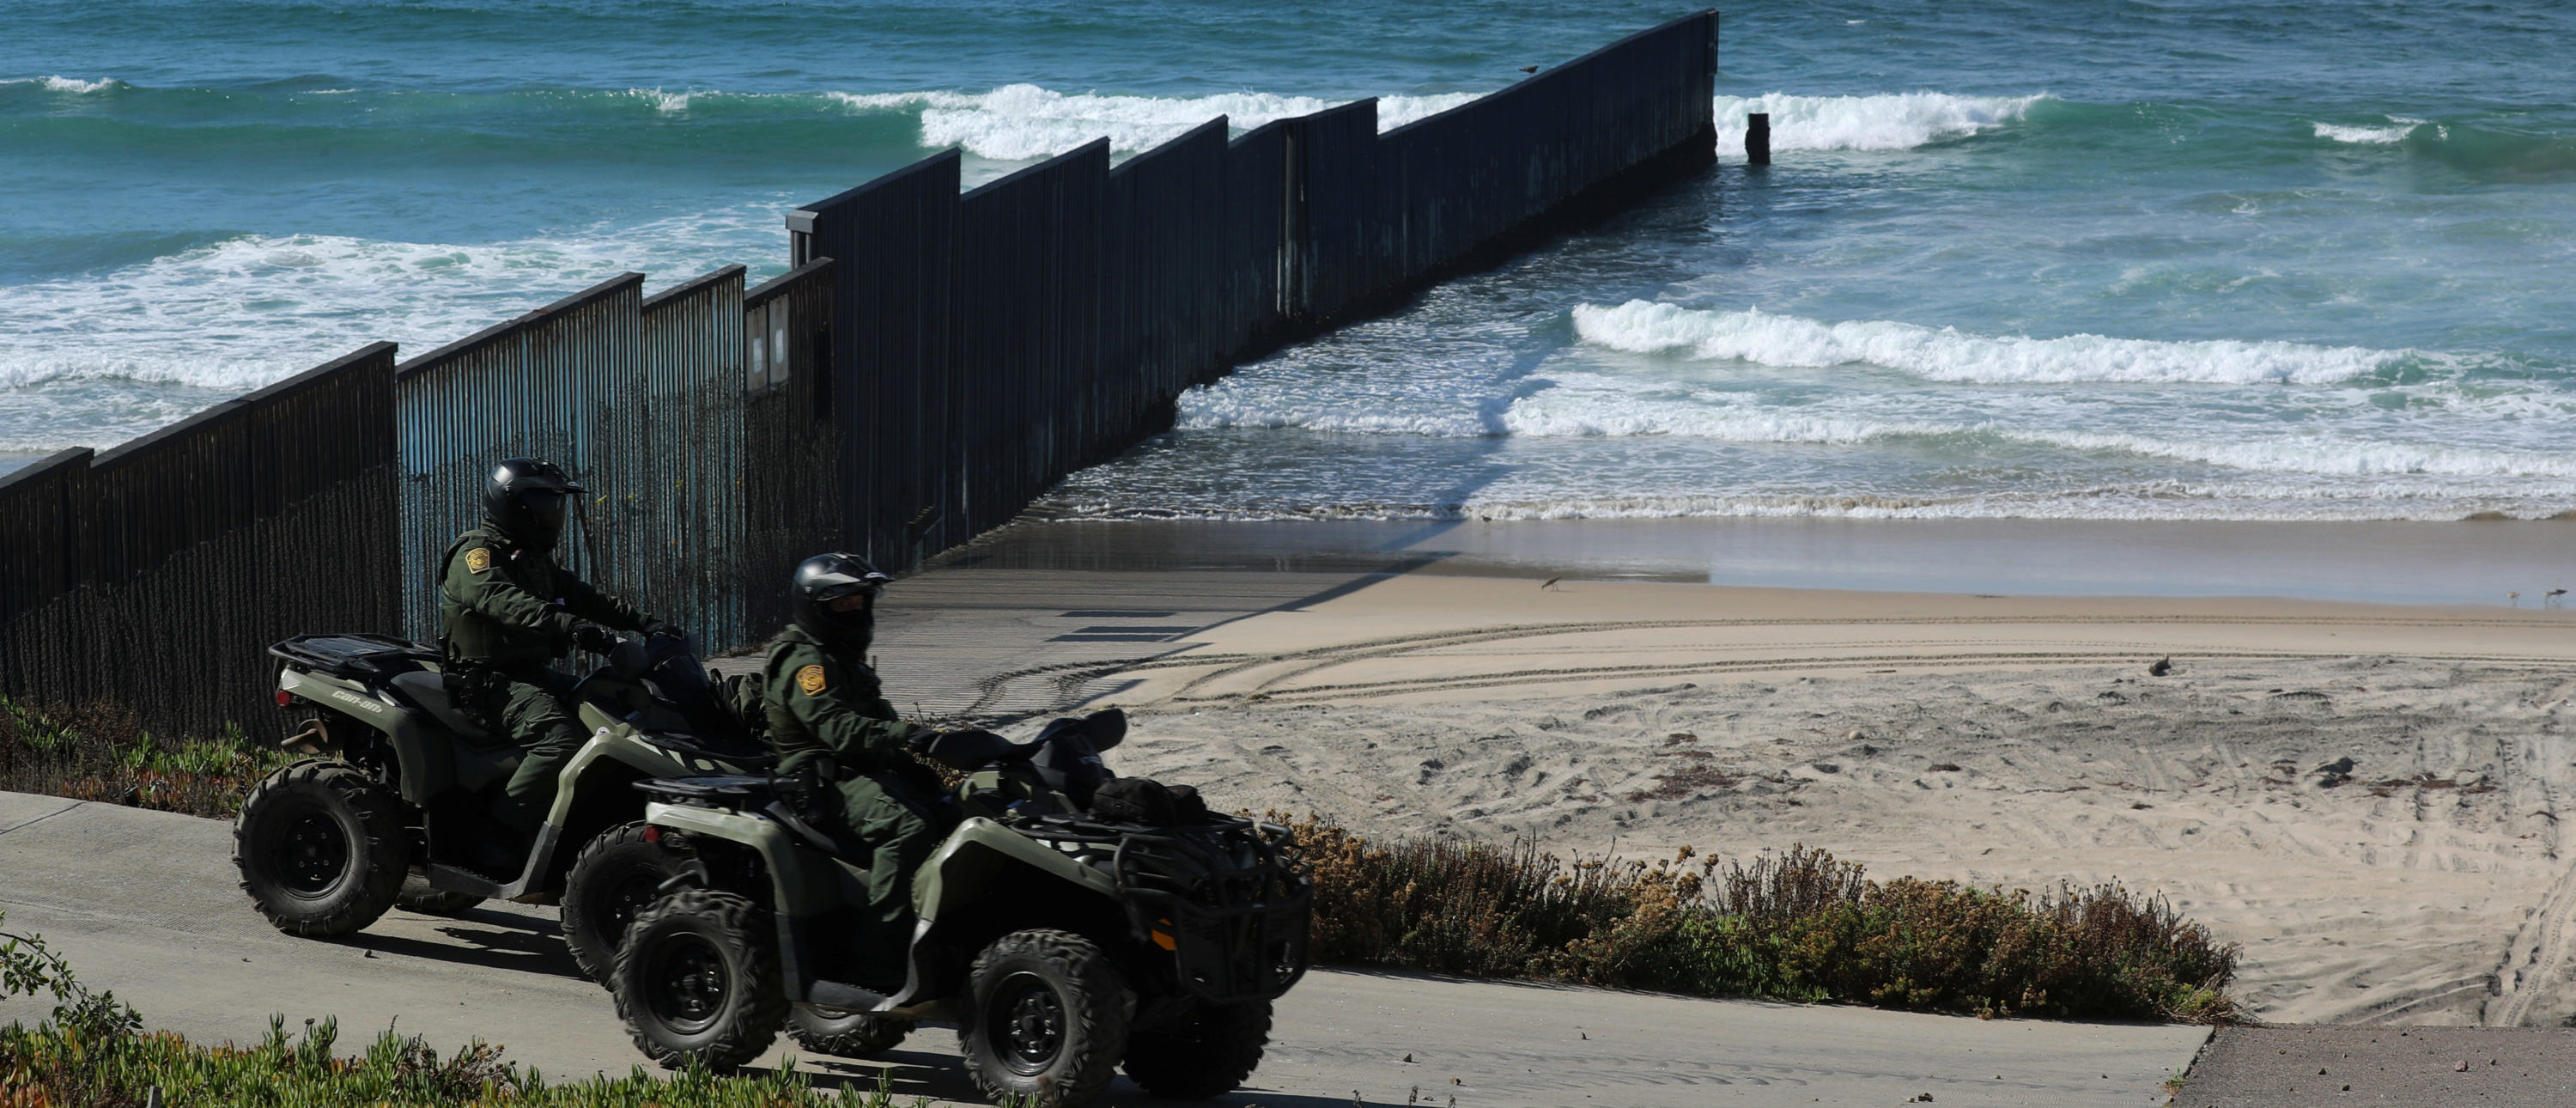 U.S. Customs and Border patrol agents on all-terrain vehicles look over over the Mexico-U.S. border wall where it enters the Pacific Ocean at Border Field State Park in San Diego, California, November 18, 2017. REUTERS/Mike Blake